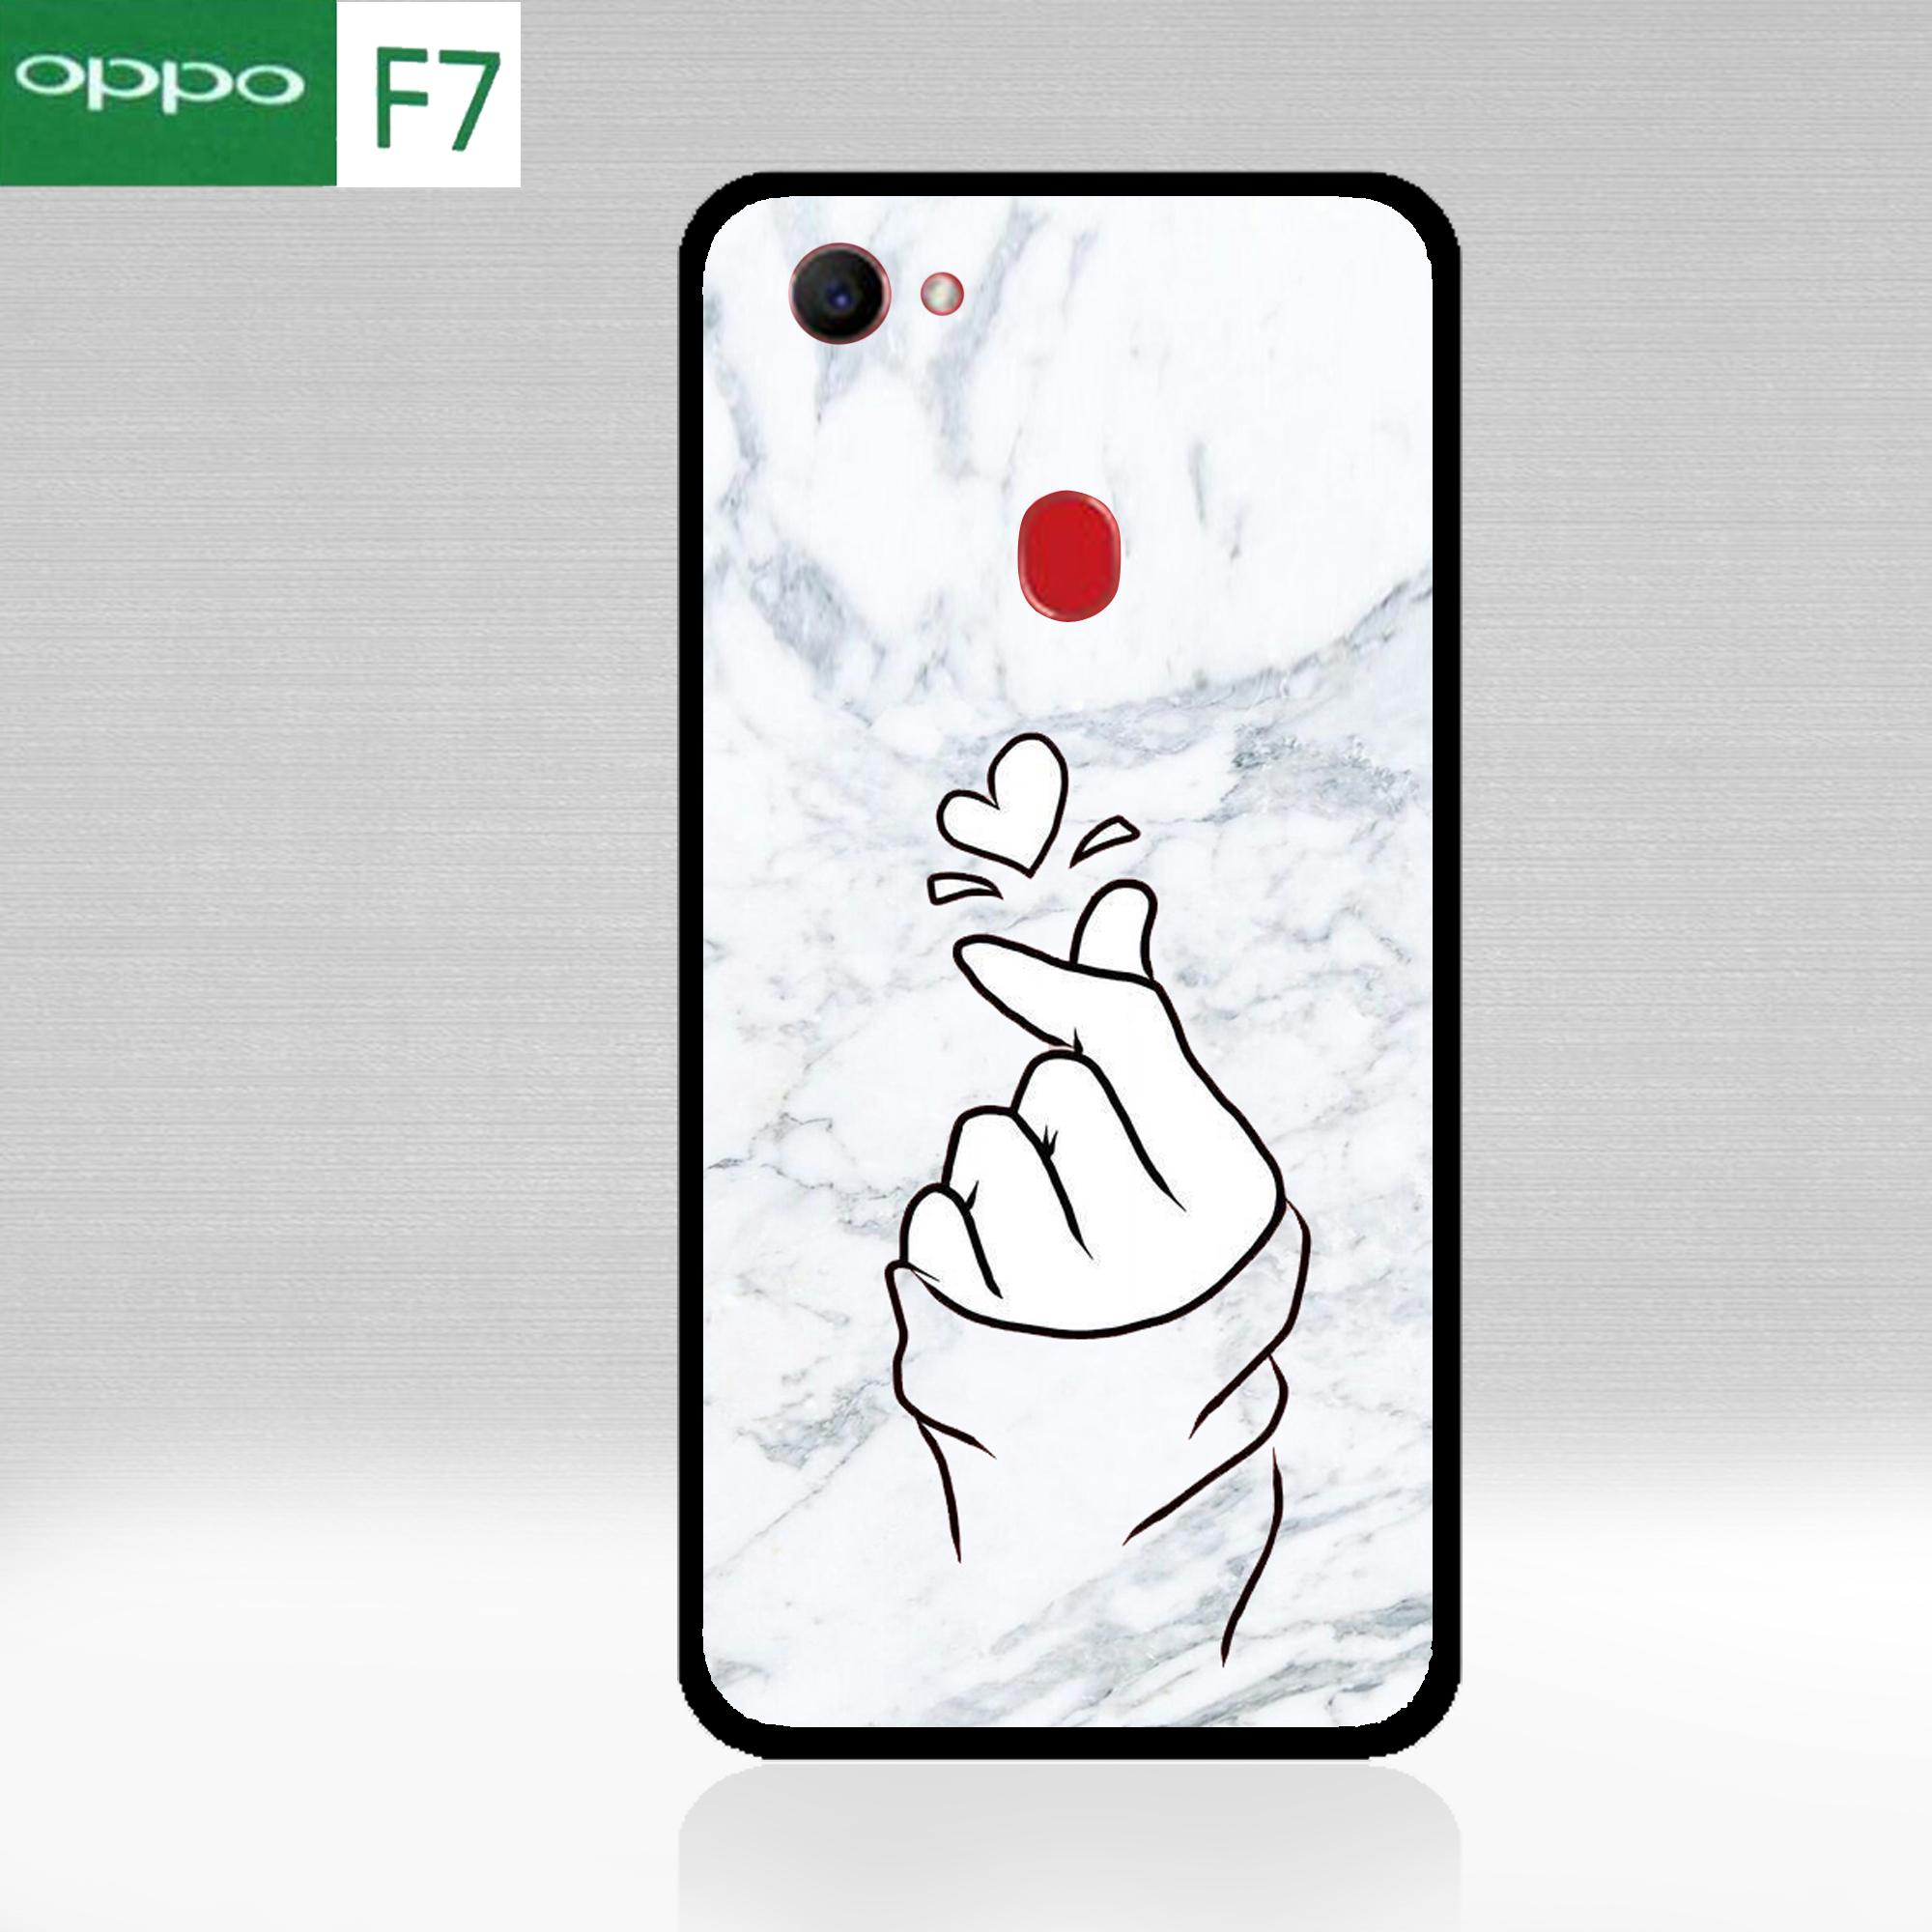 Case Oppo F7 - Fashion Ghea Series